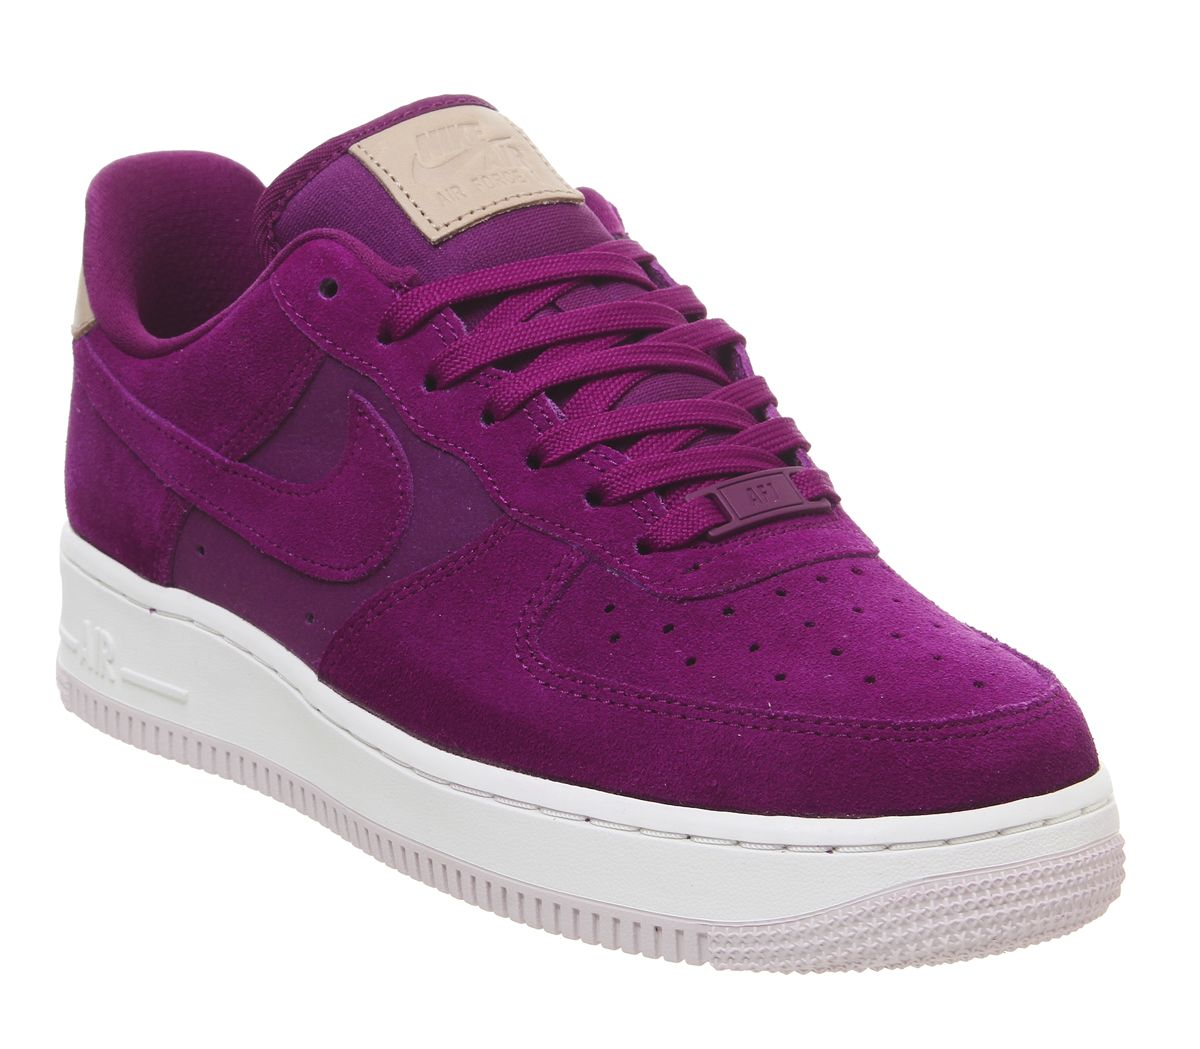 53bdcbb8112 Nike Air Force 1 07 Trainers True Berry Summit White Vachetta Tan ...